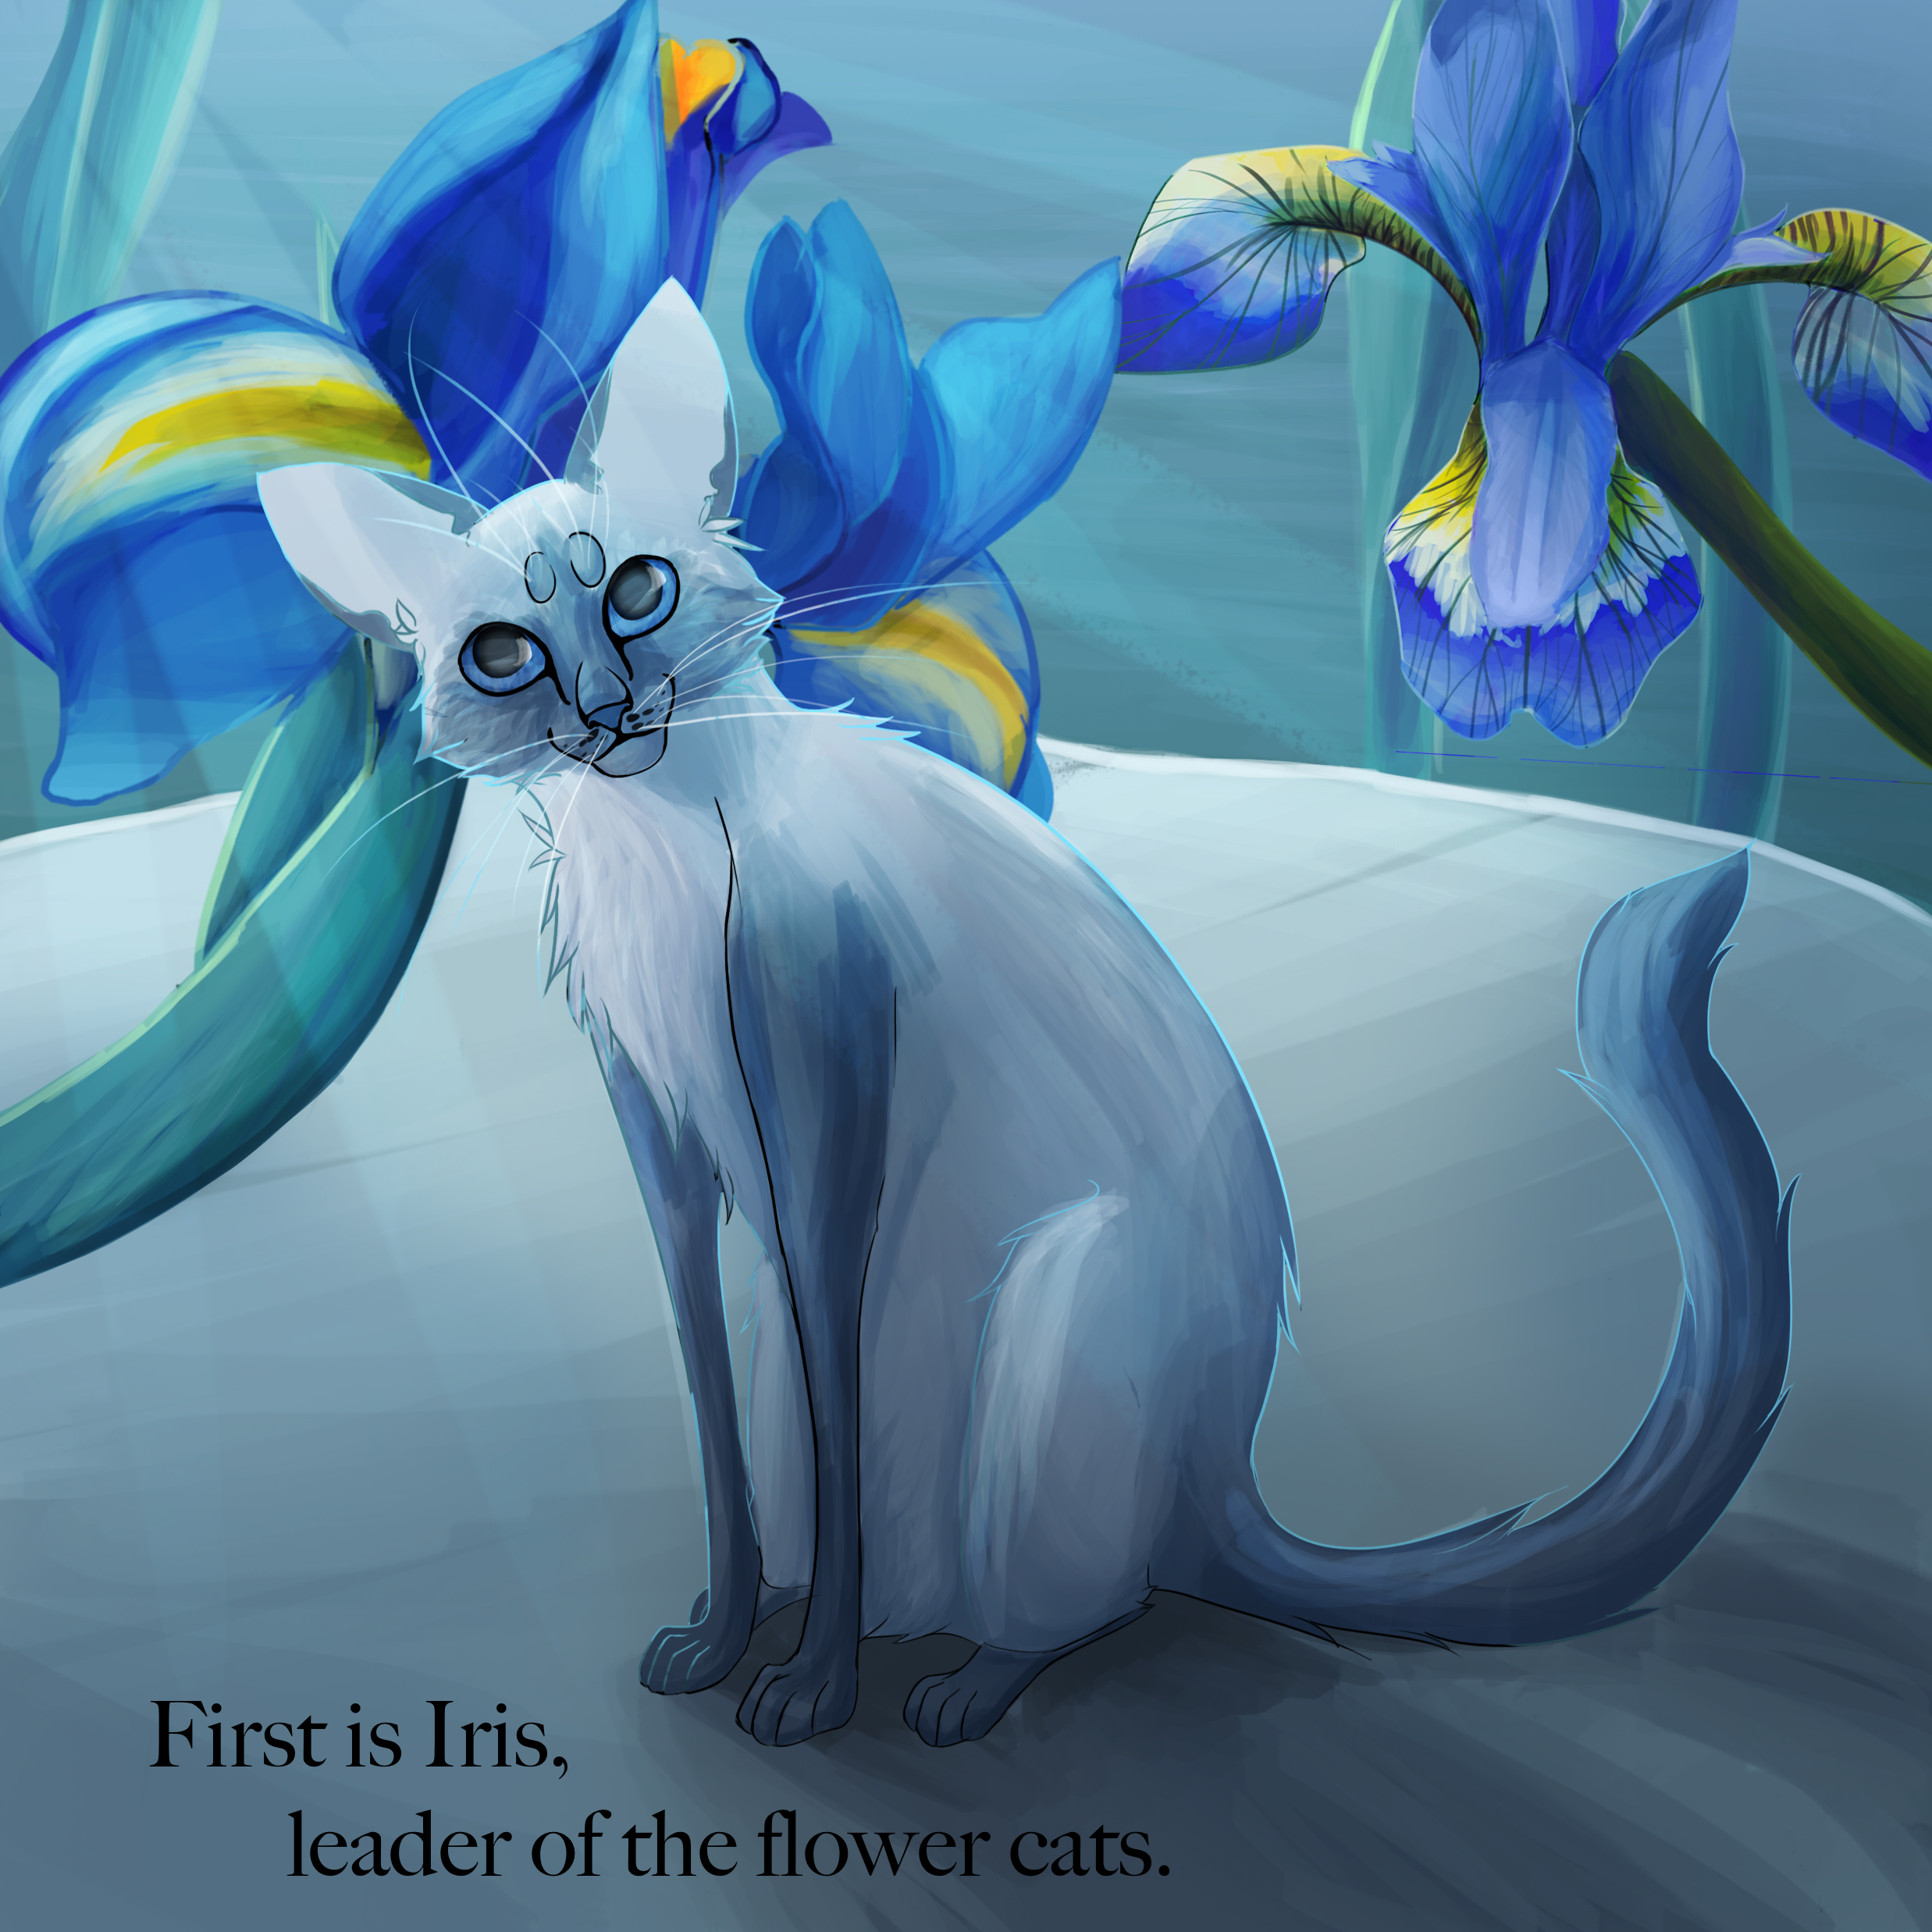 flower cats page 8.jpg